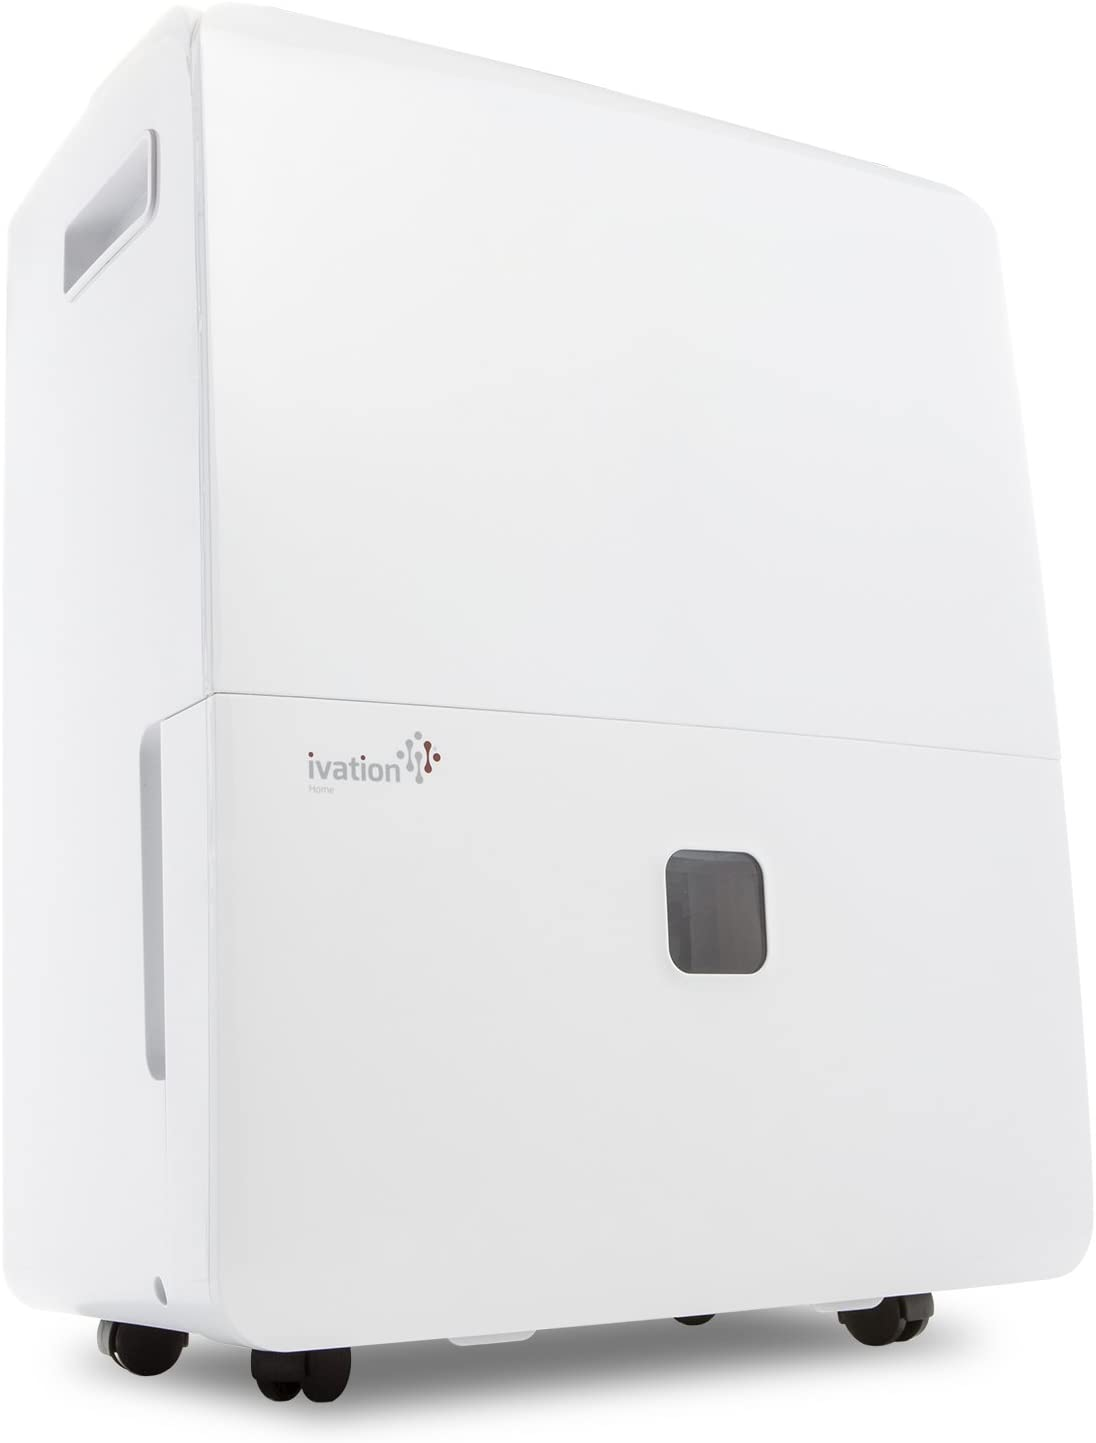 Ivation 6,000 Sq Ft Large-Capacity Energy Star Dehumidifier with Pump - 95 Pint Compressor (60 Pint New DOE) - Includes Programmable Humidistat, Hose Connector, Auto Shutoff/Restart, Washable Filter